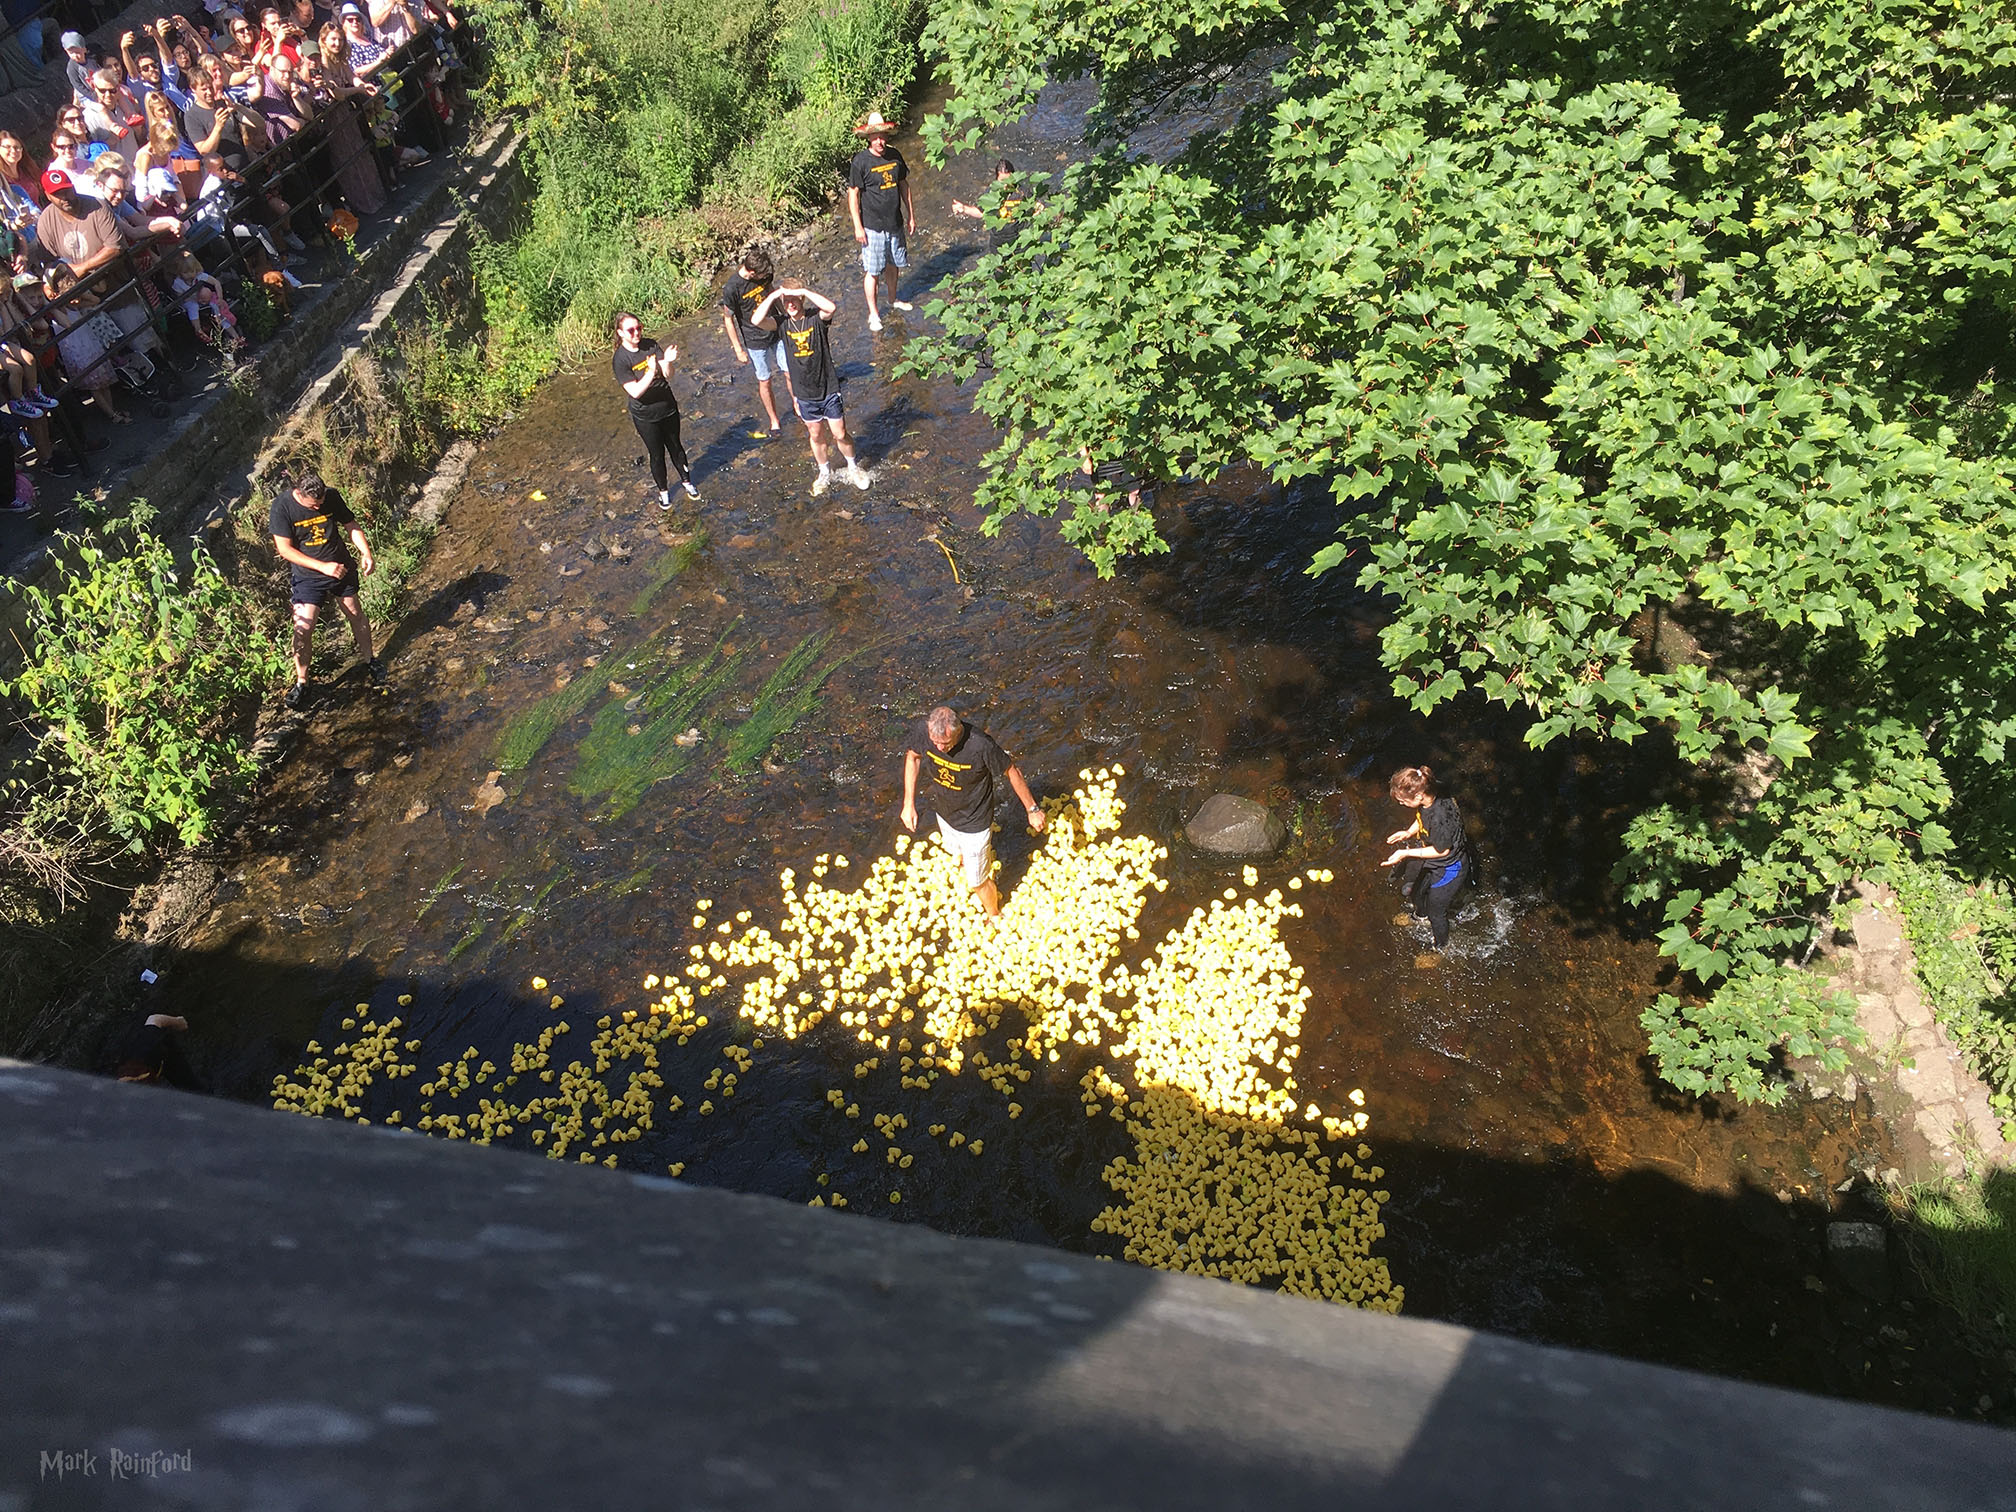 stockbridge duck race 2018